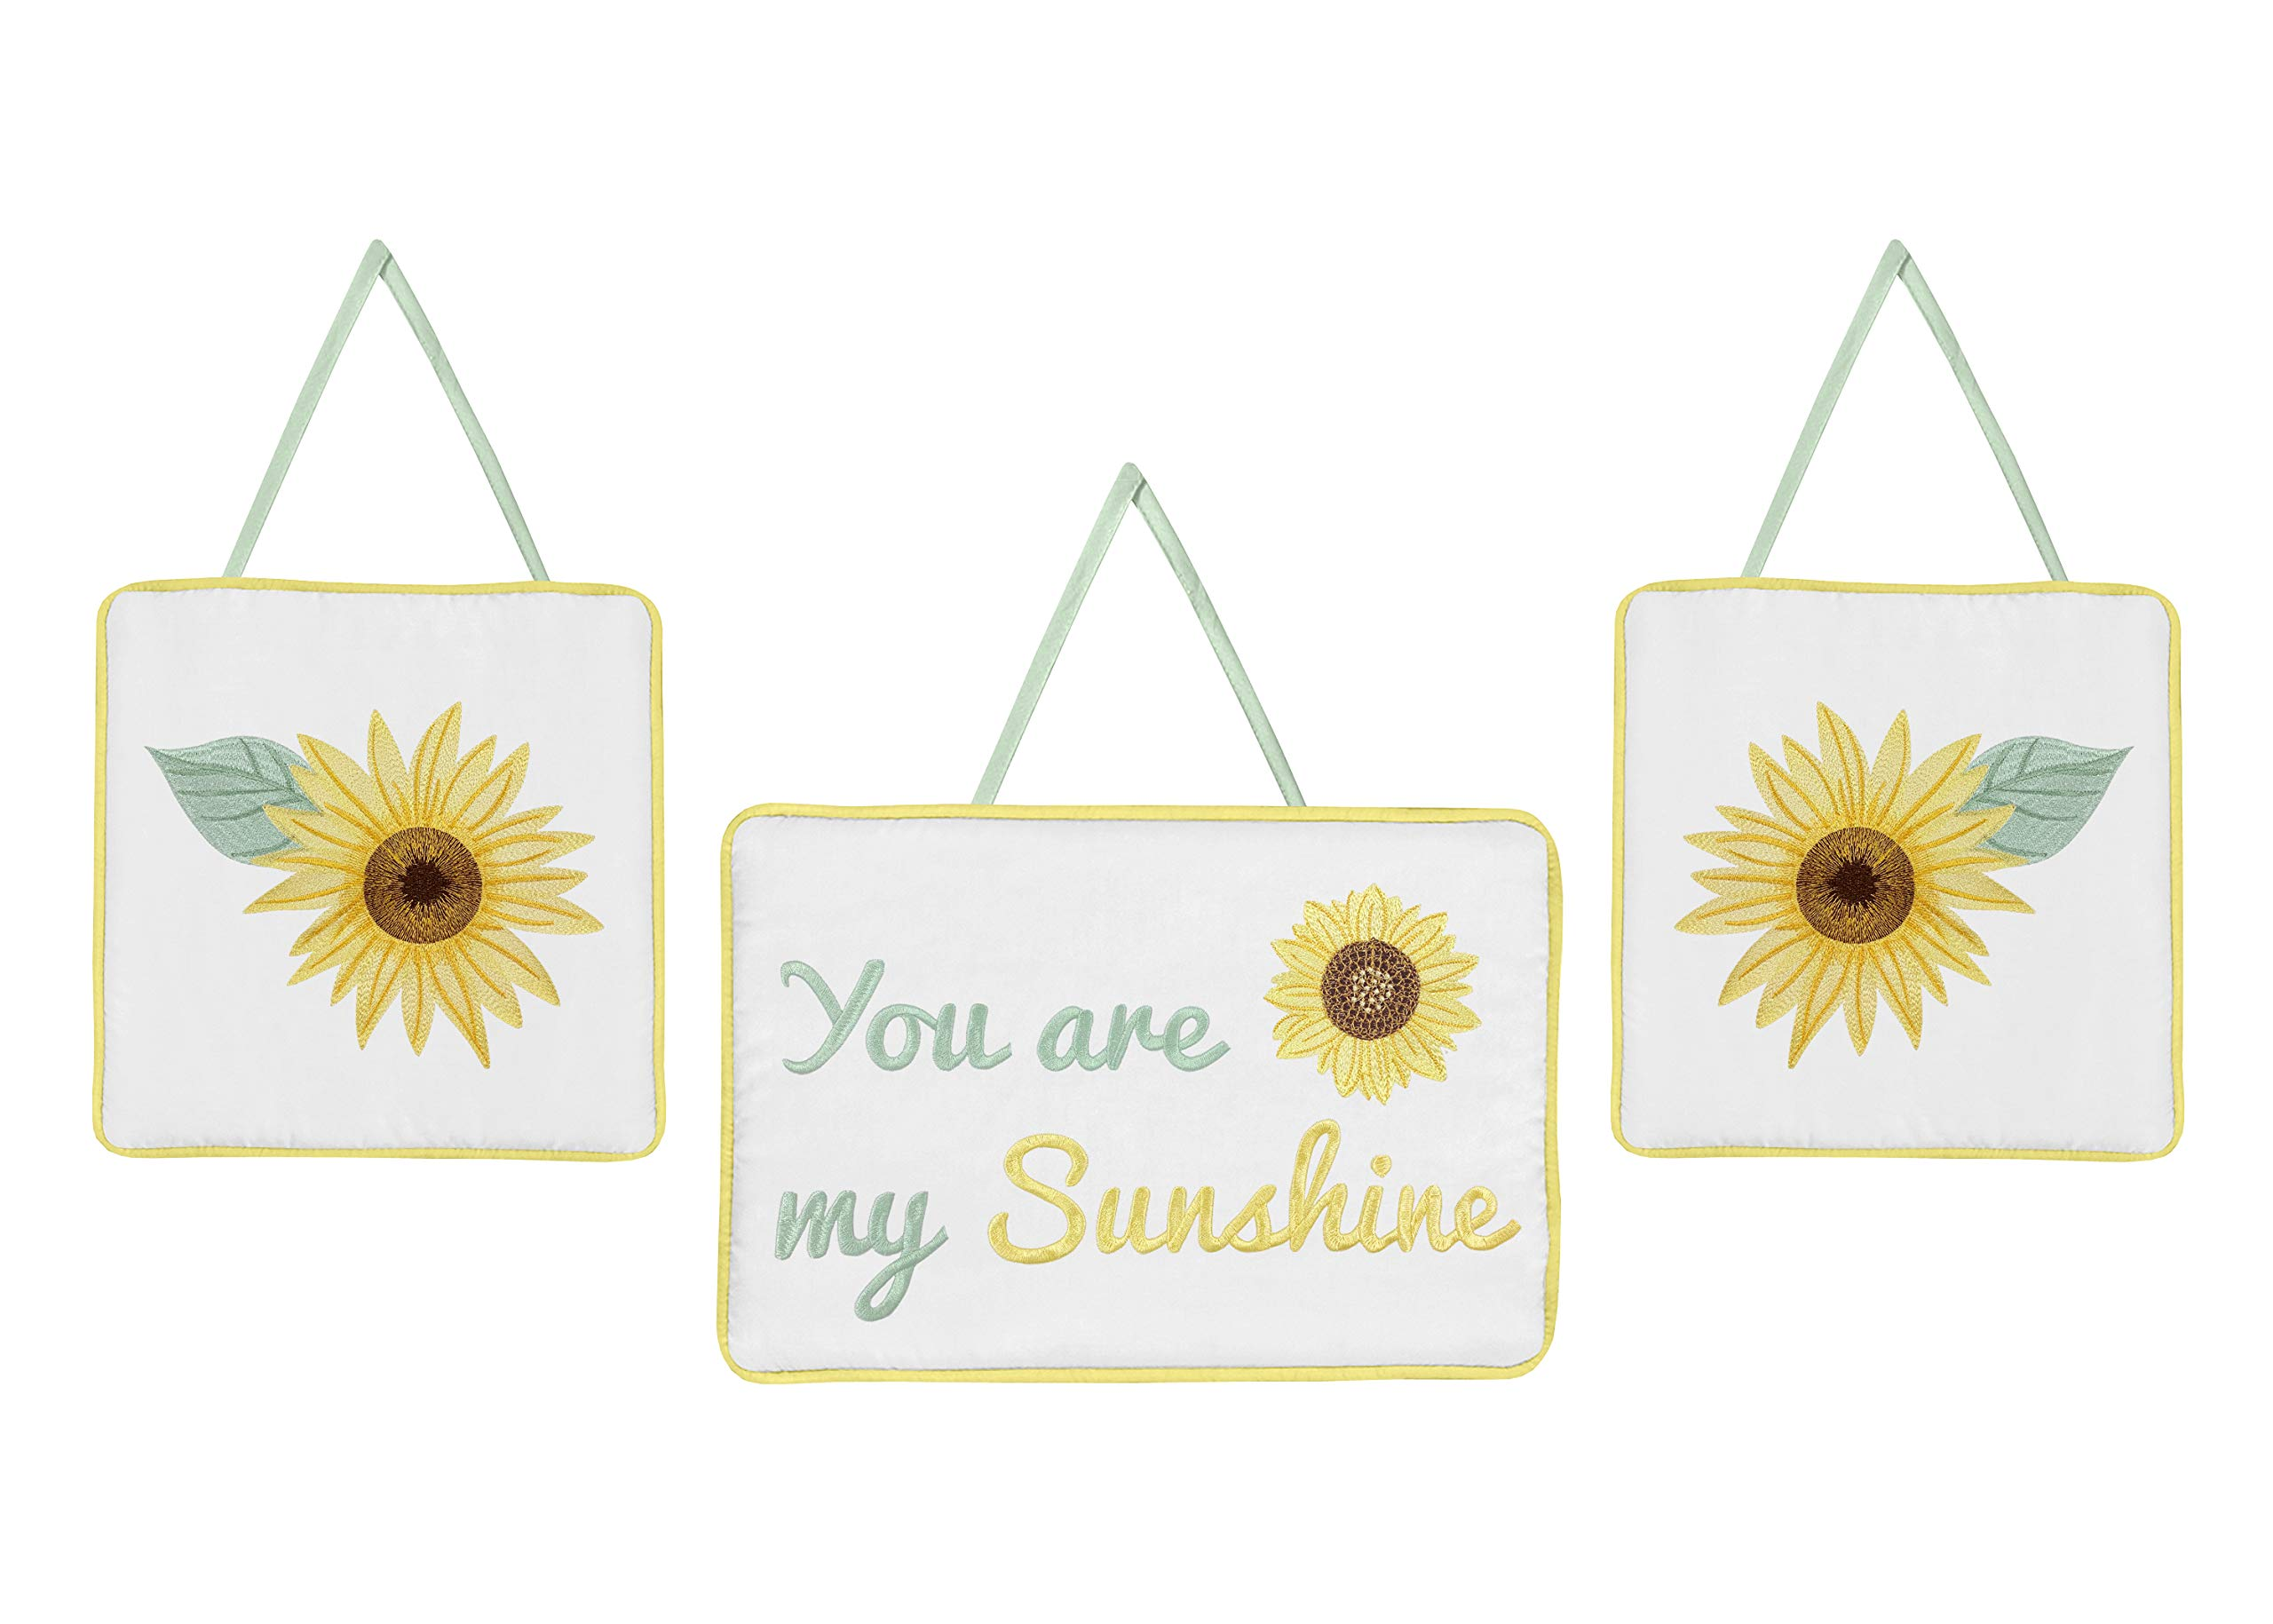 Sweet Jojo Designs Yellow, Green and White Sunflower Boho Floral Wall Hanging Decor - Set of 3 - Farmhouse Watercolor Flower